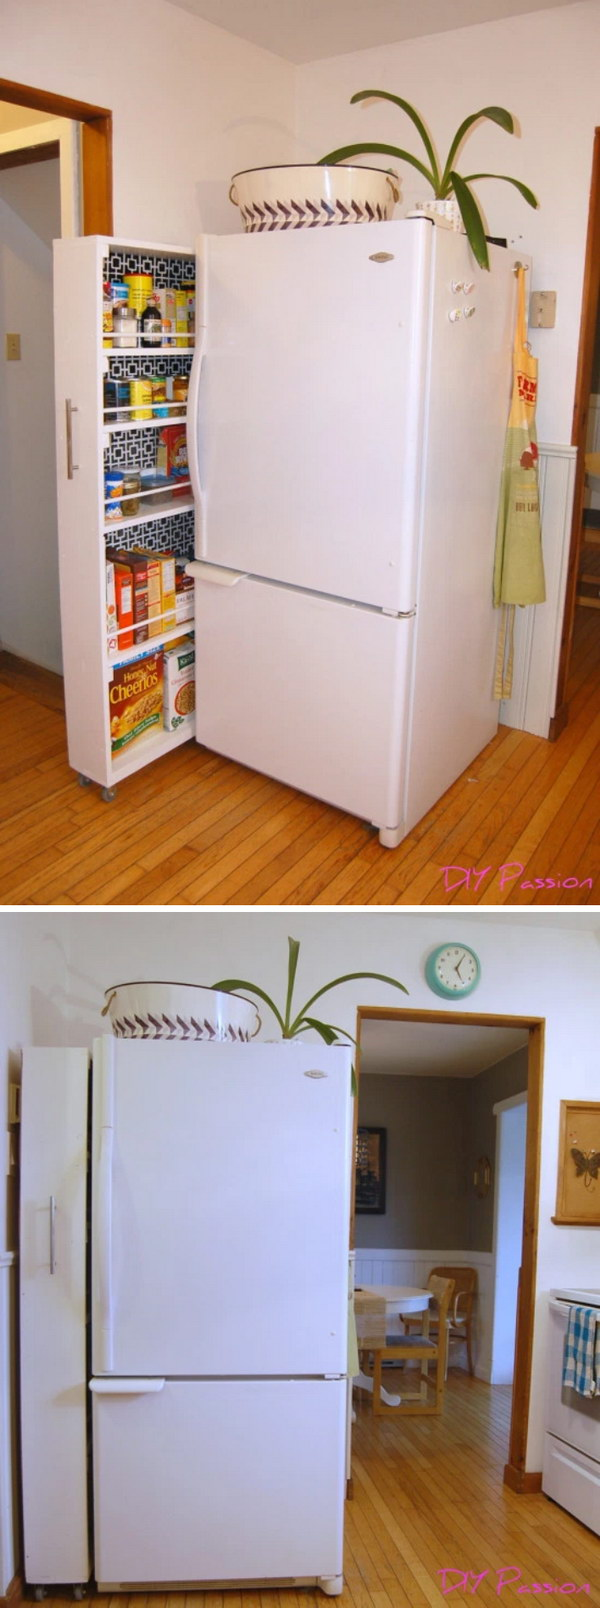 50 easy storage ideas for small spaces 2017 Kitchen storage cabinets for small spaces